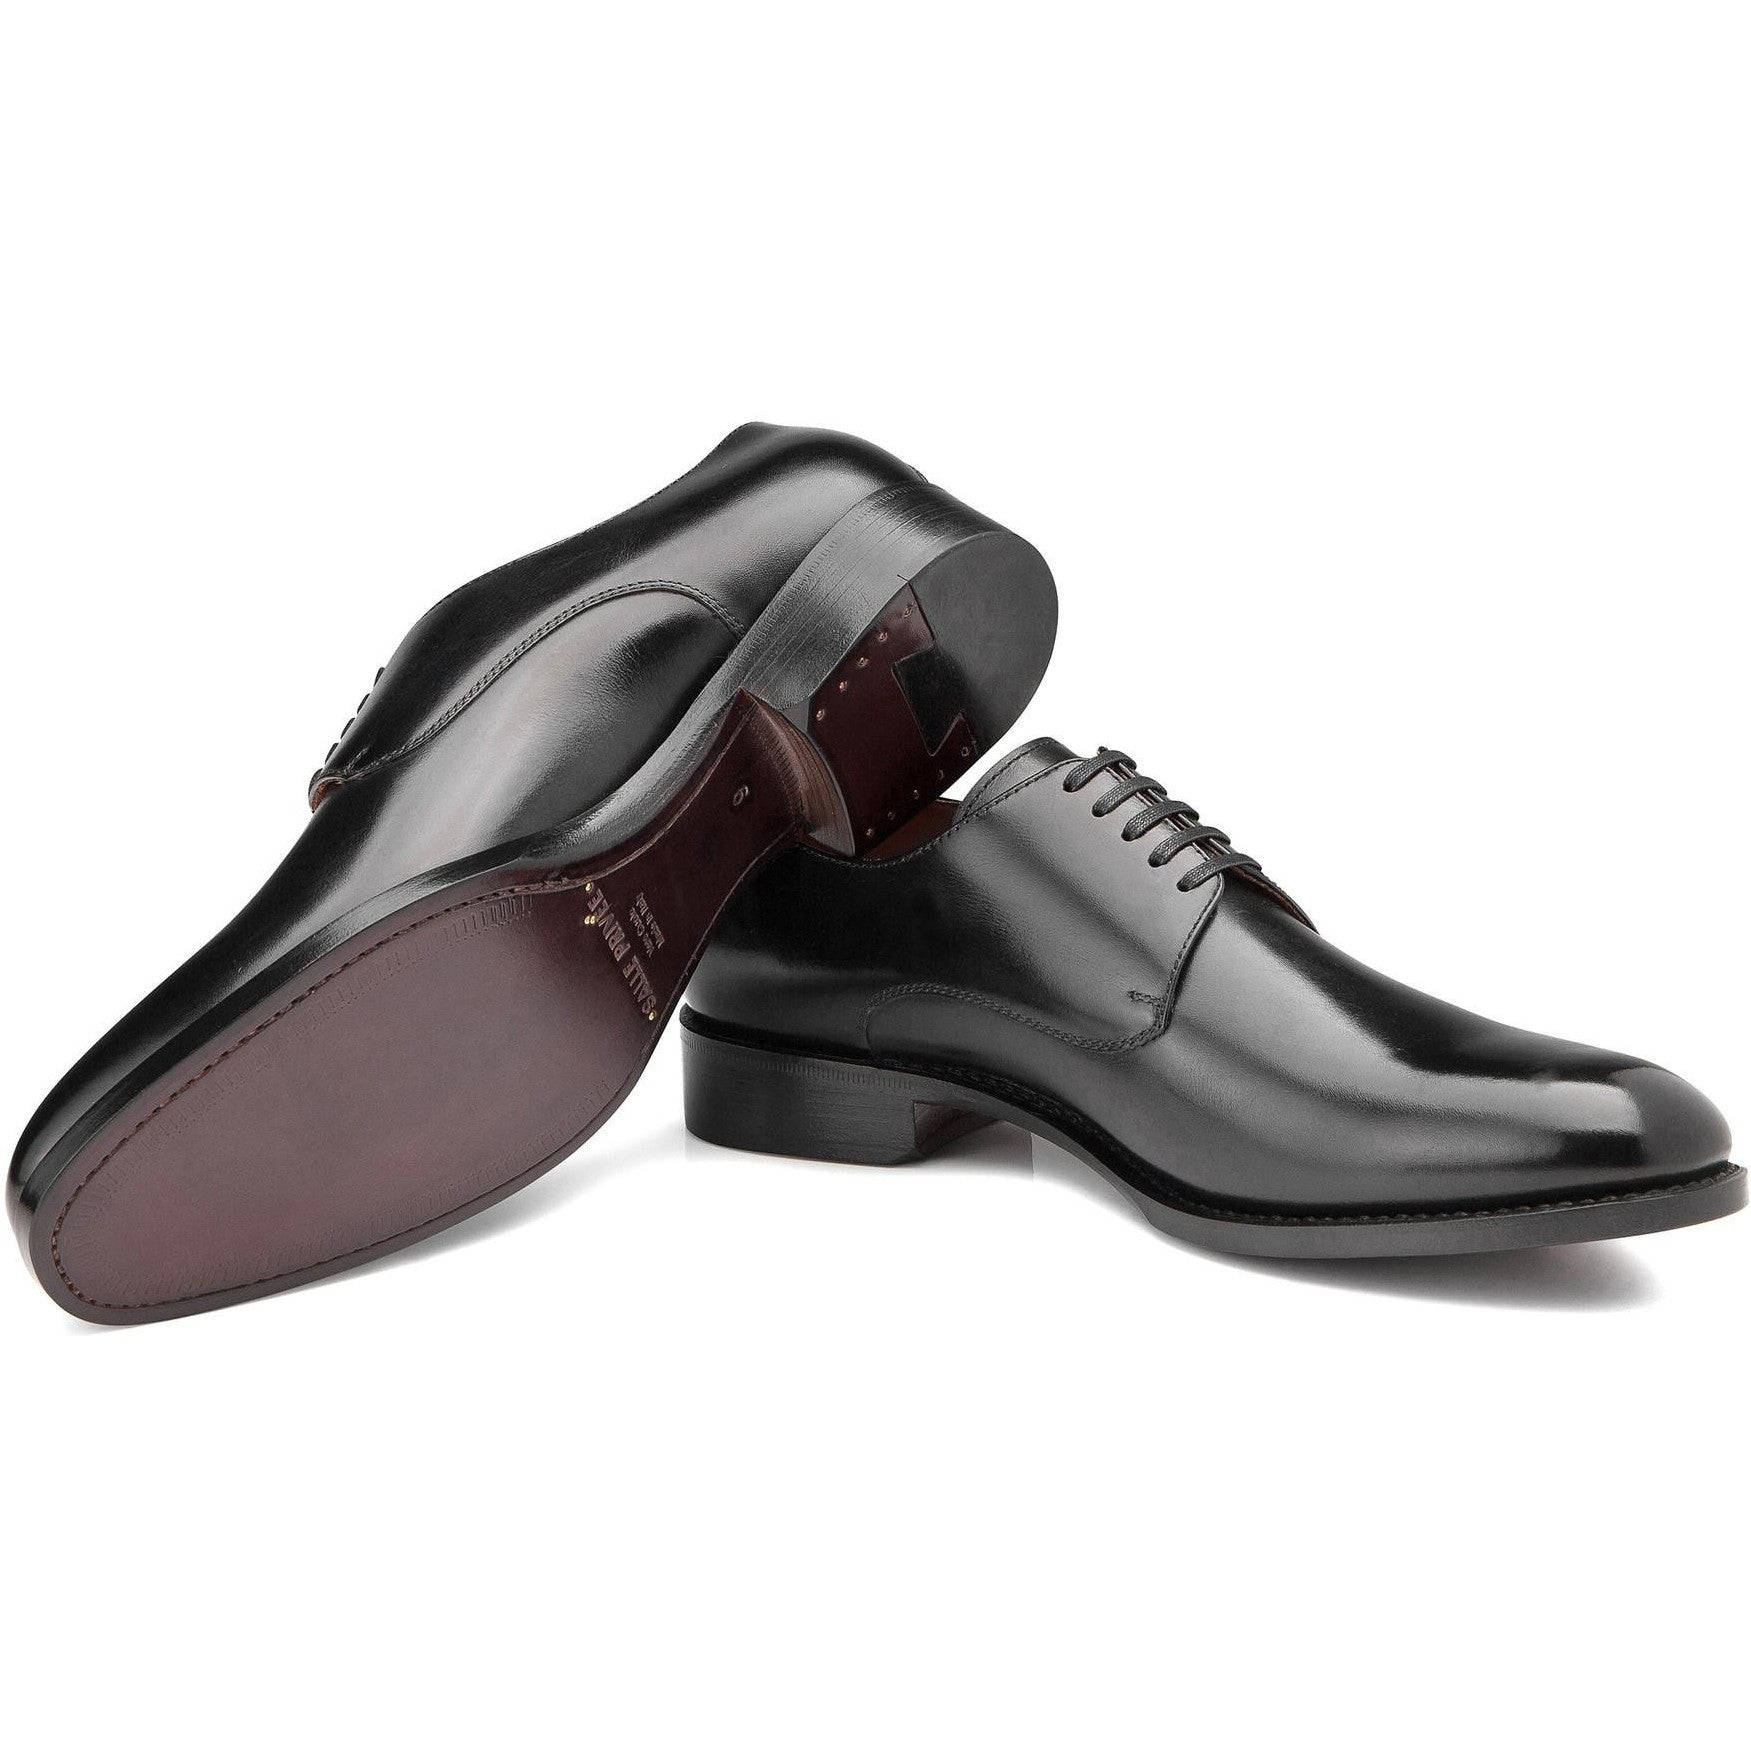 LOGAN derby shoes-SALLE PRIVÉE